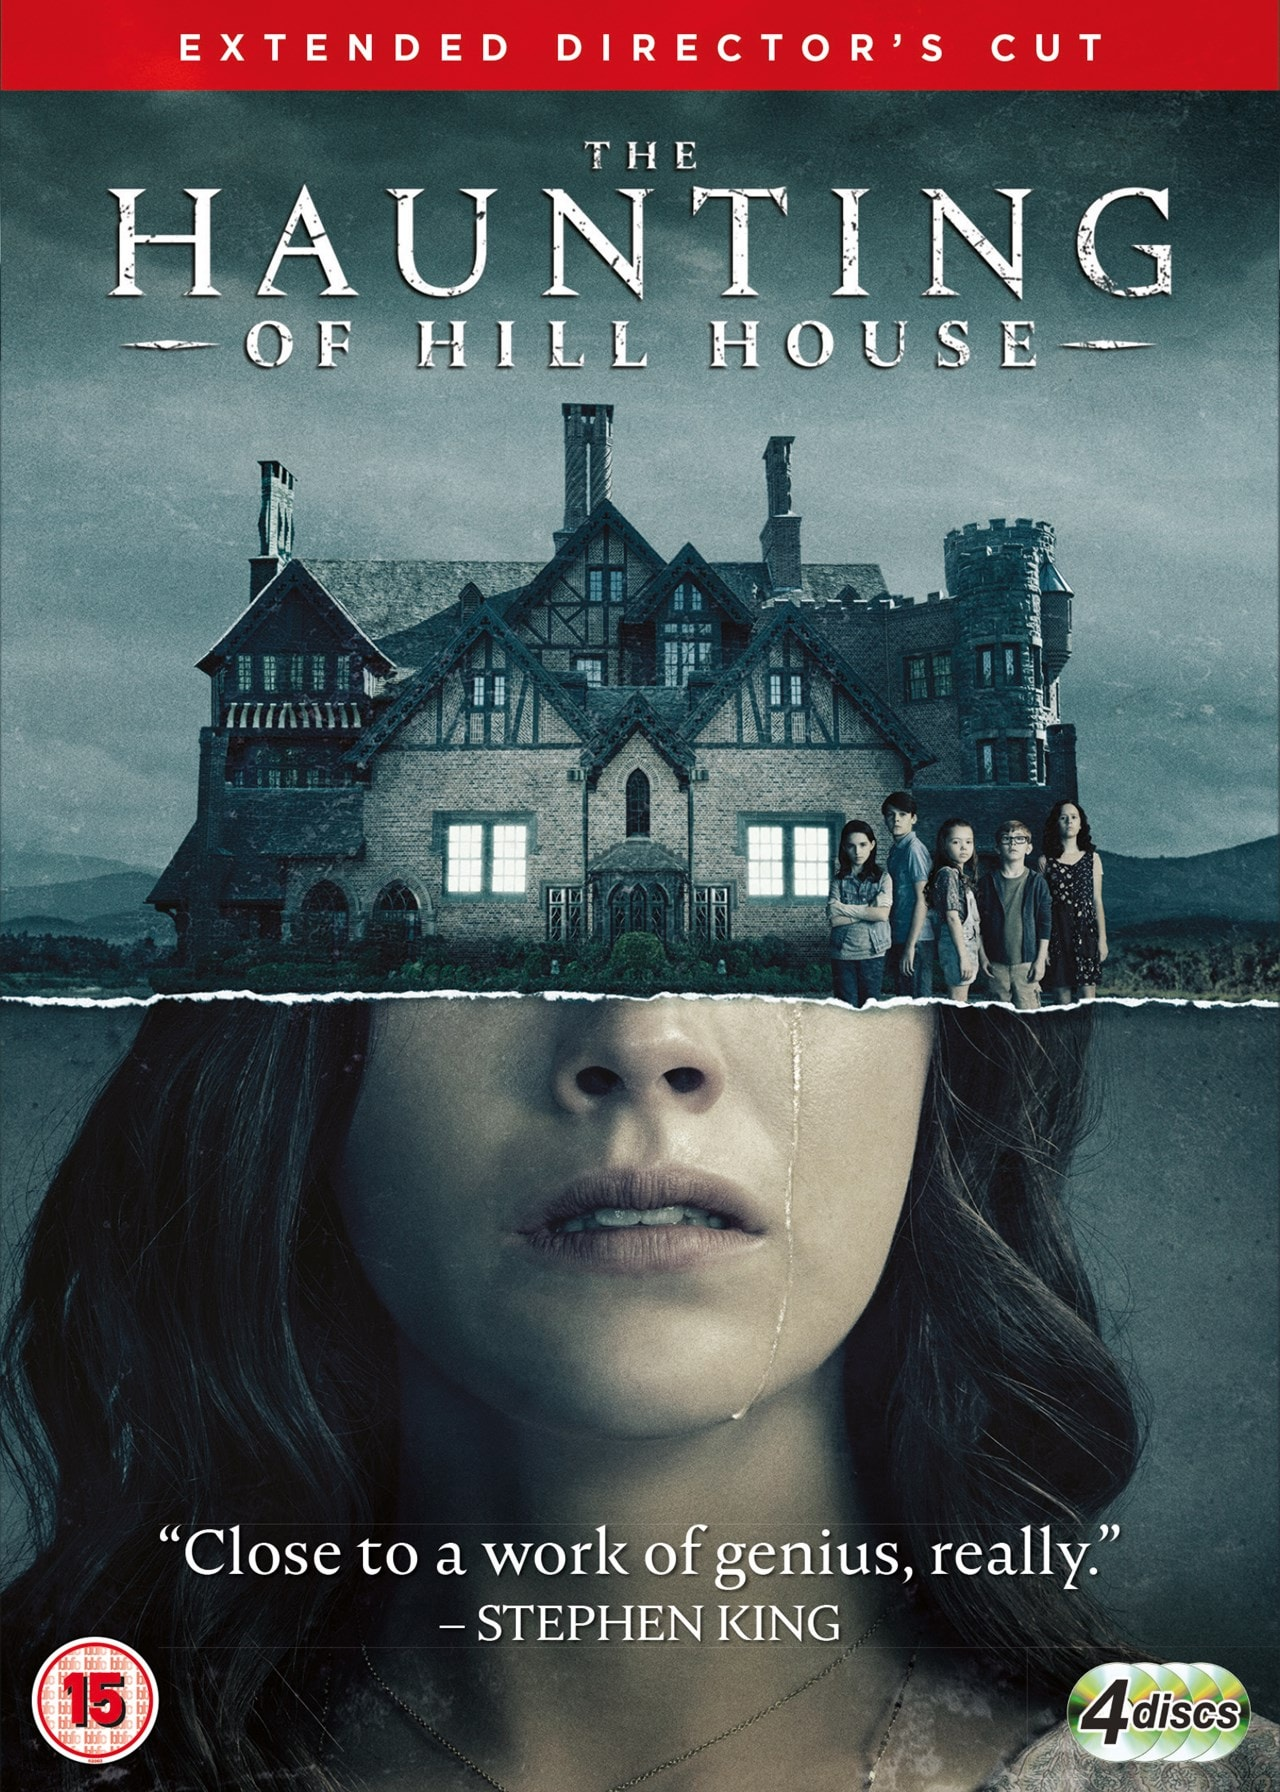 The Haunting Of Hill House Season 1 Dvd Box Set Free Shipping Over 20 Hmv Store